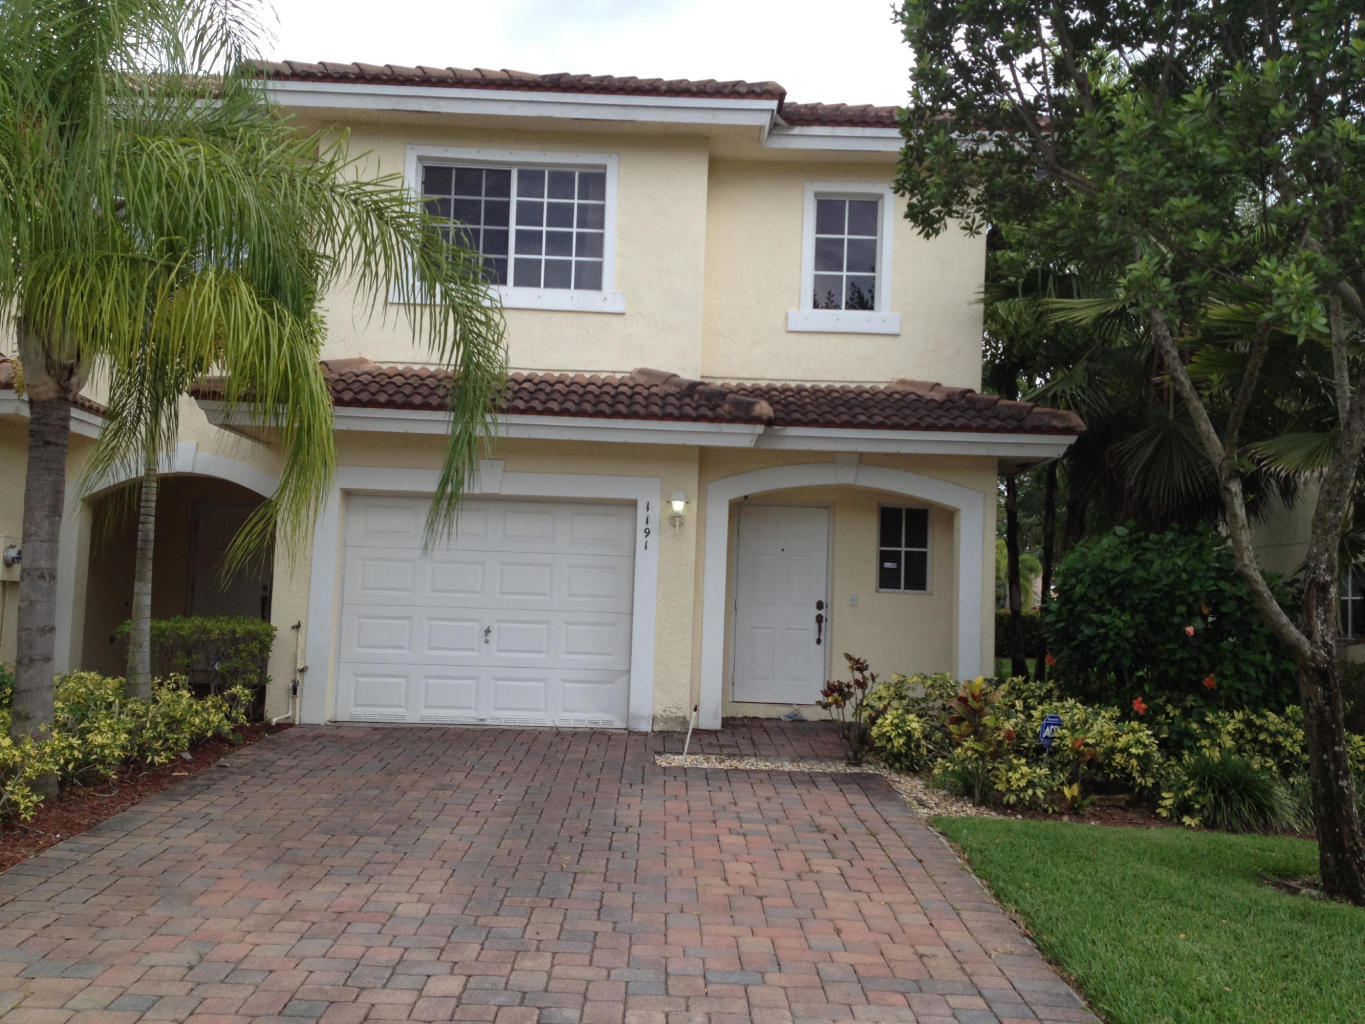 1191 Imperial Lake Road, West Palm Beach, Florida 33413, 3 Bedrooms Bedrooms, ,2.1 BathroomsBathrooms,F,Townhouse,Imperial Lake,RX-10617290